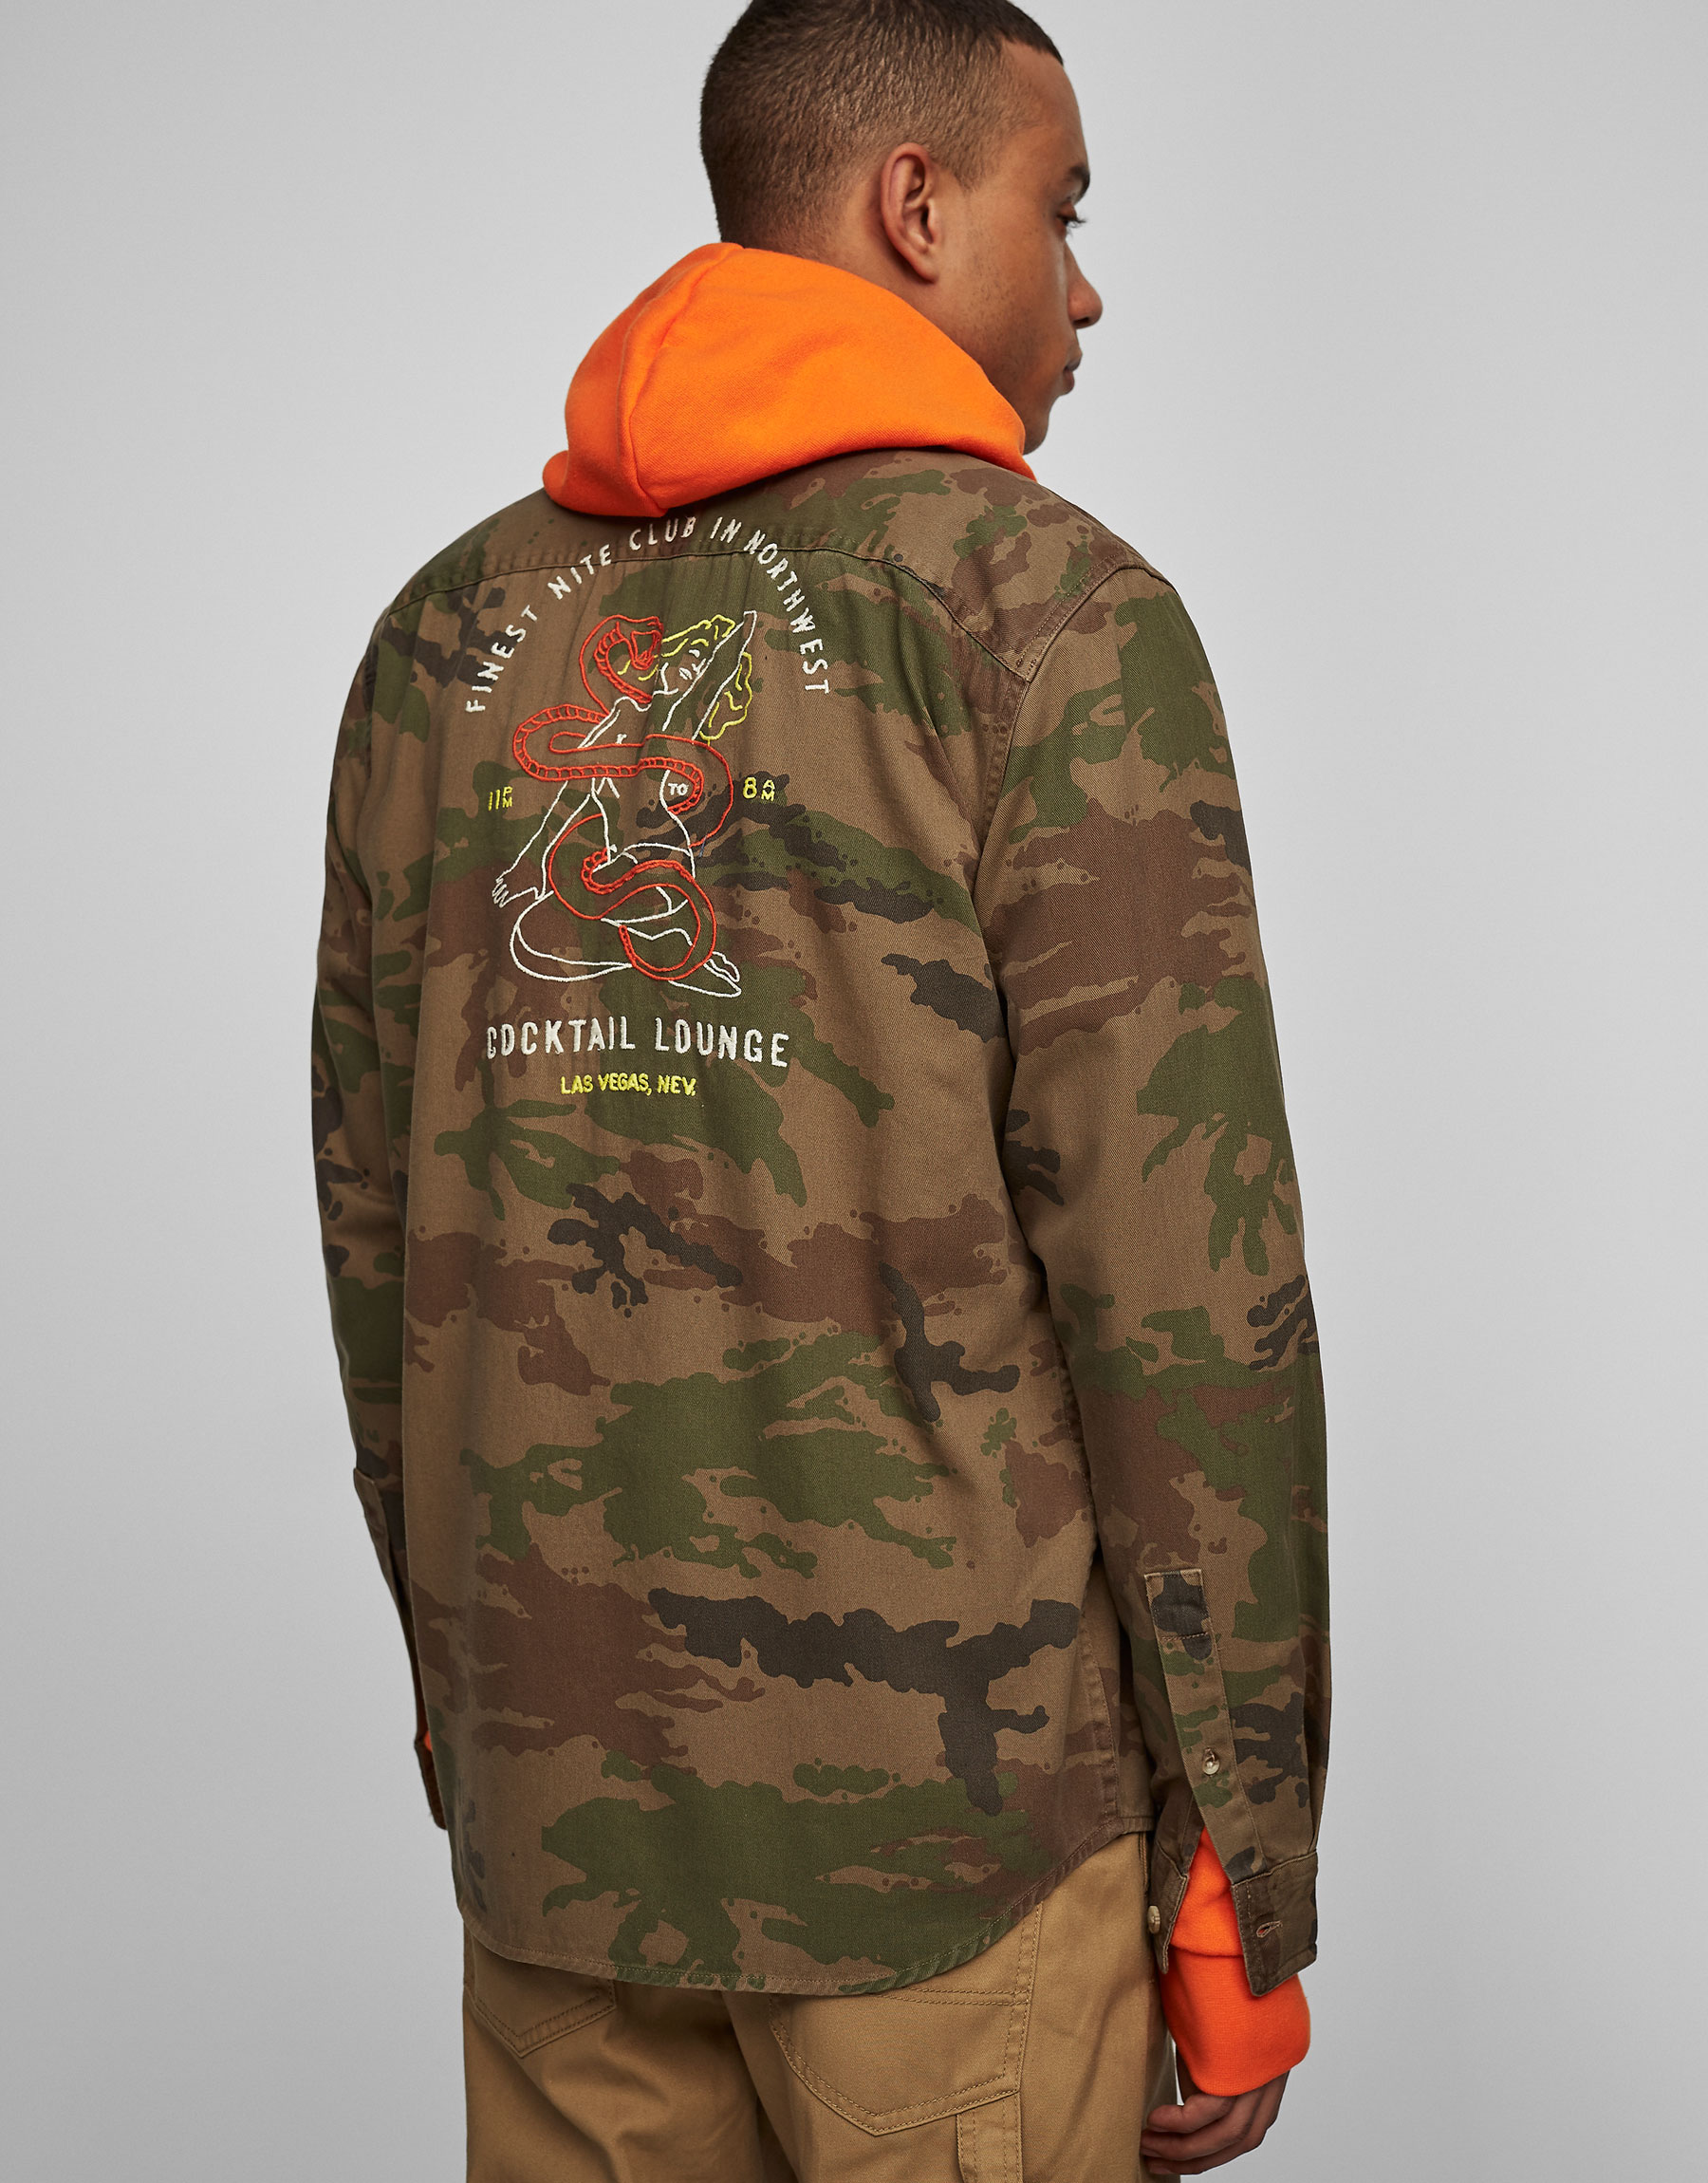 Camouflage overshirt with embroidery on the back